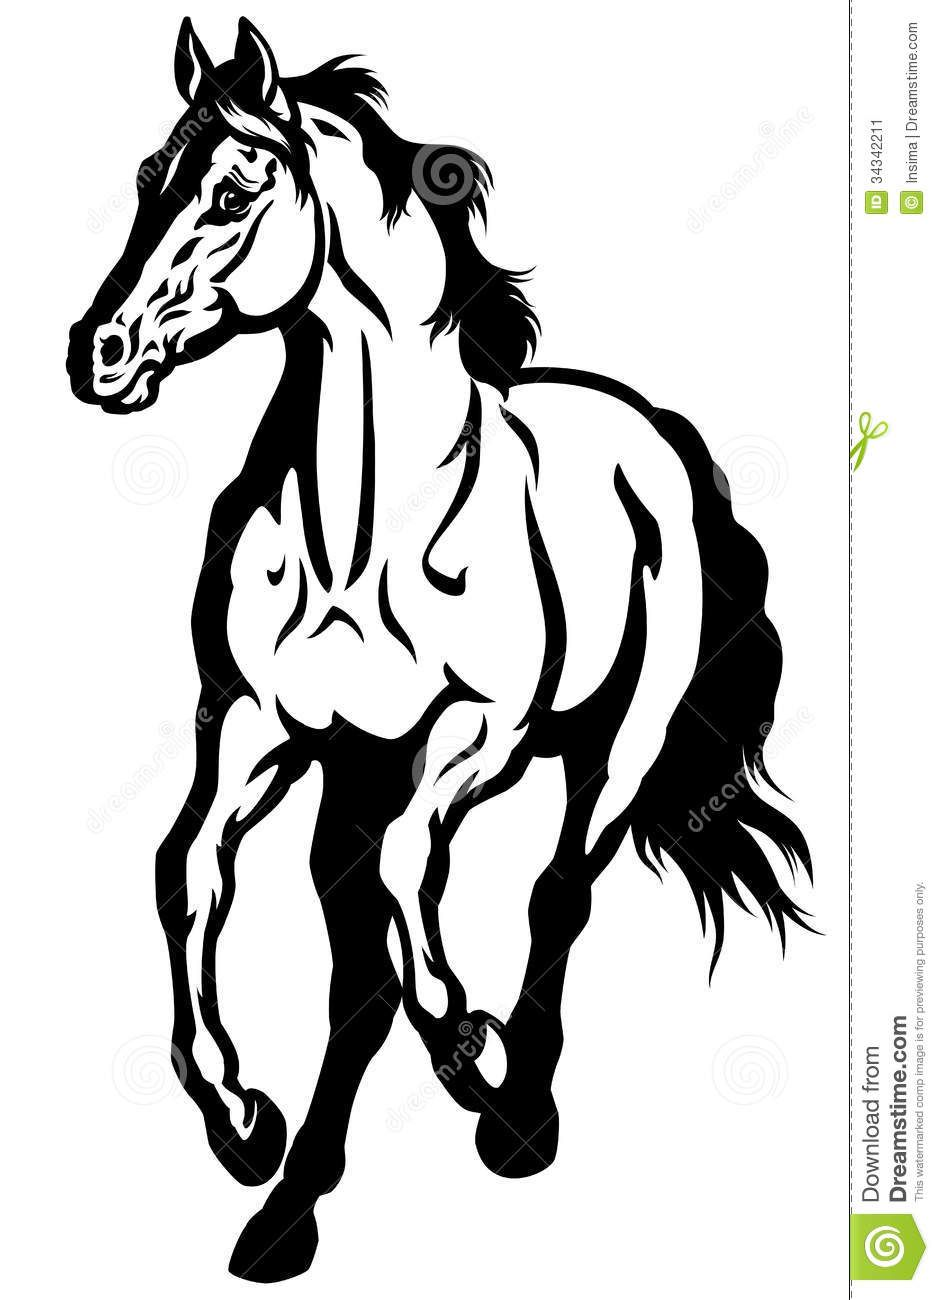 939x1300 Image Result For Black And White Horse Drawings Quilt Patterns